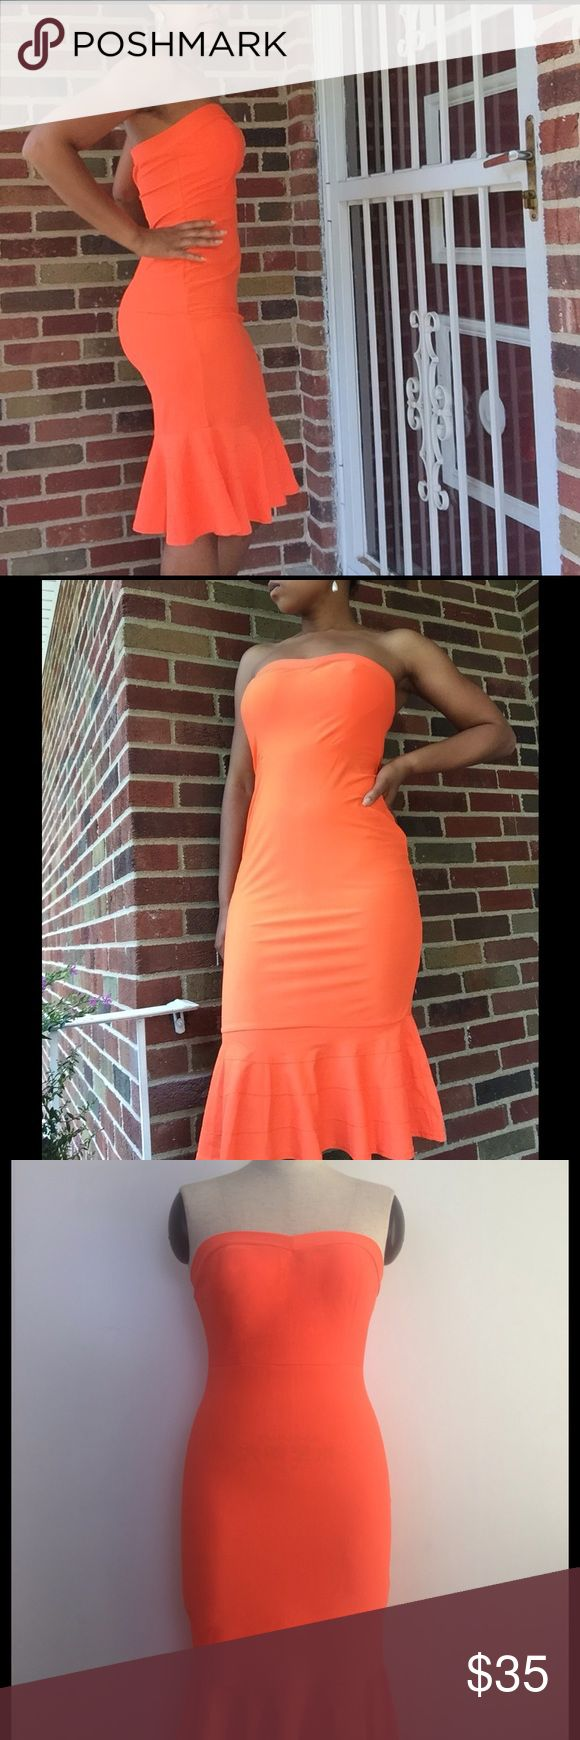 Bright Orange Midi Mermaid/Trumpet Dress This brightly colored number is perfect for the summertime! Slinky orange midi dress featuring a flirty trumpet hemline. Breast area is lightly padded. Dresses Midi